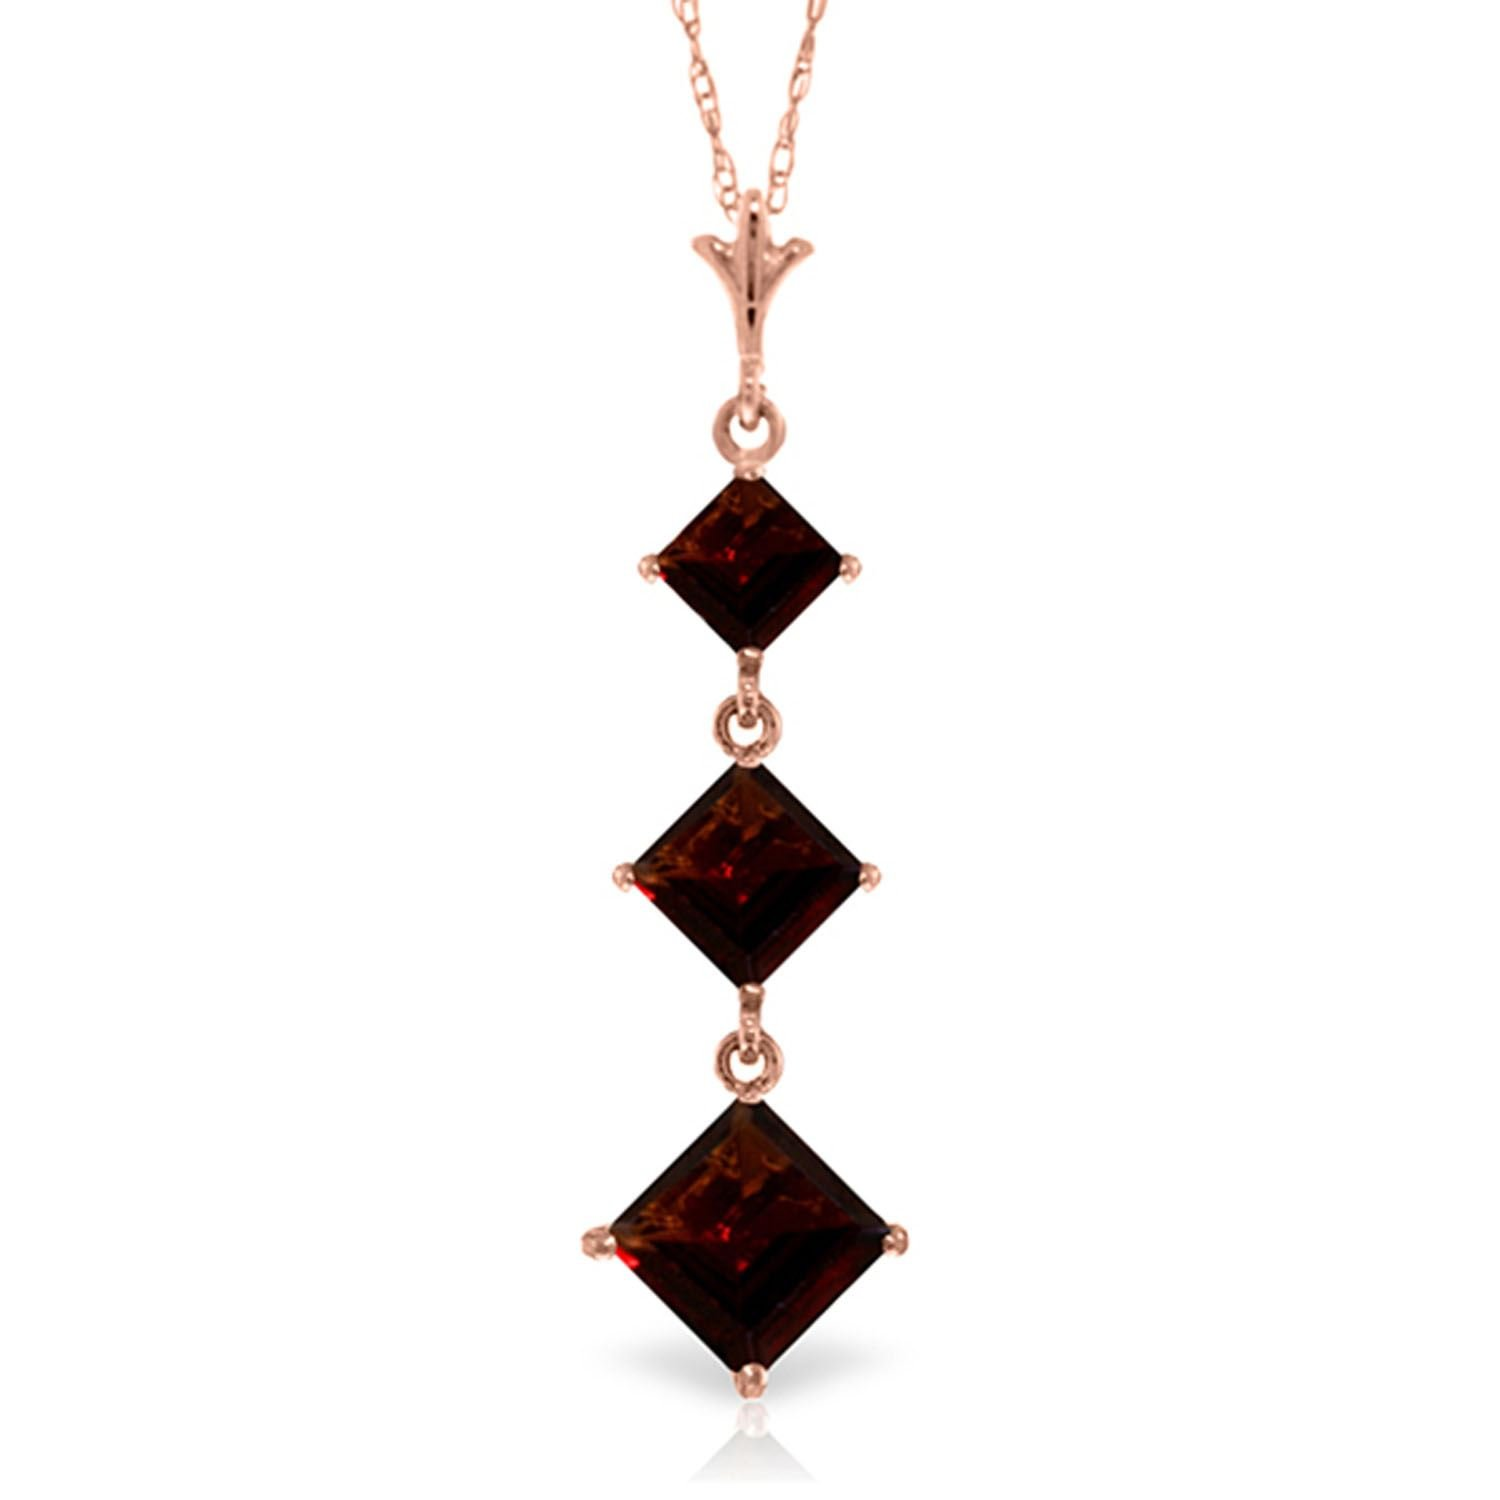 ALARRI 2.4 Carat 14K Solid Rose Gold Waterdrops Garnet Necklace with 22 Inch Chain Length